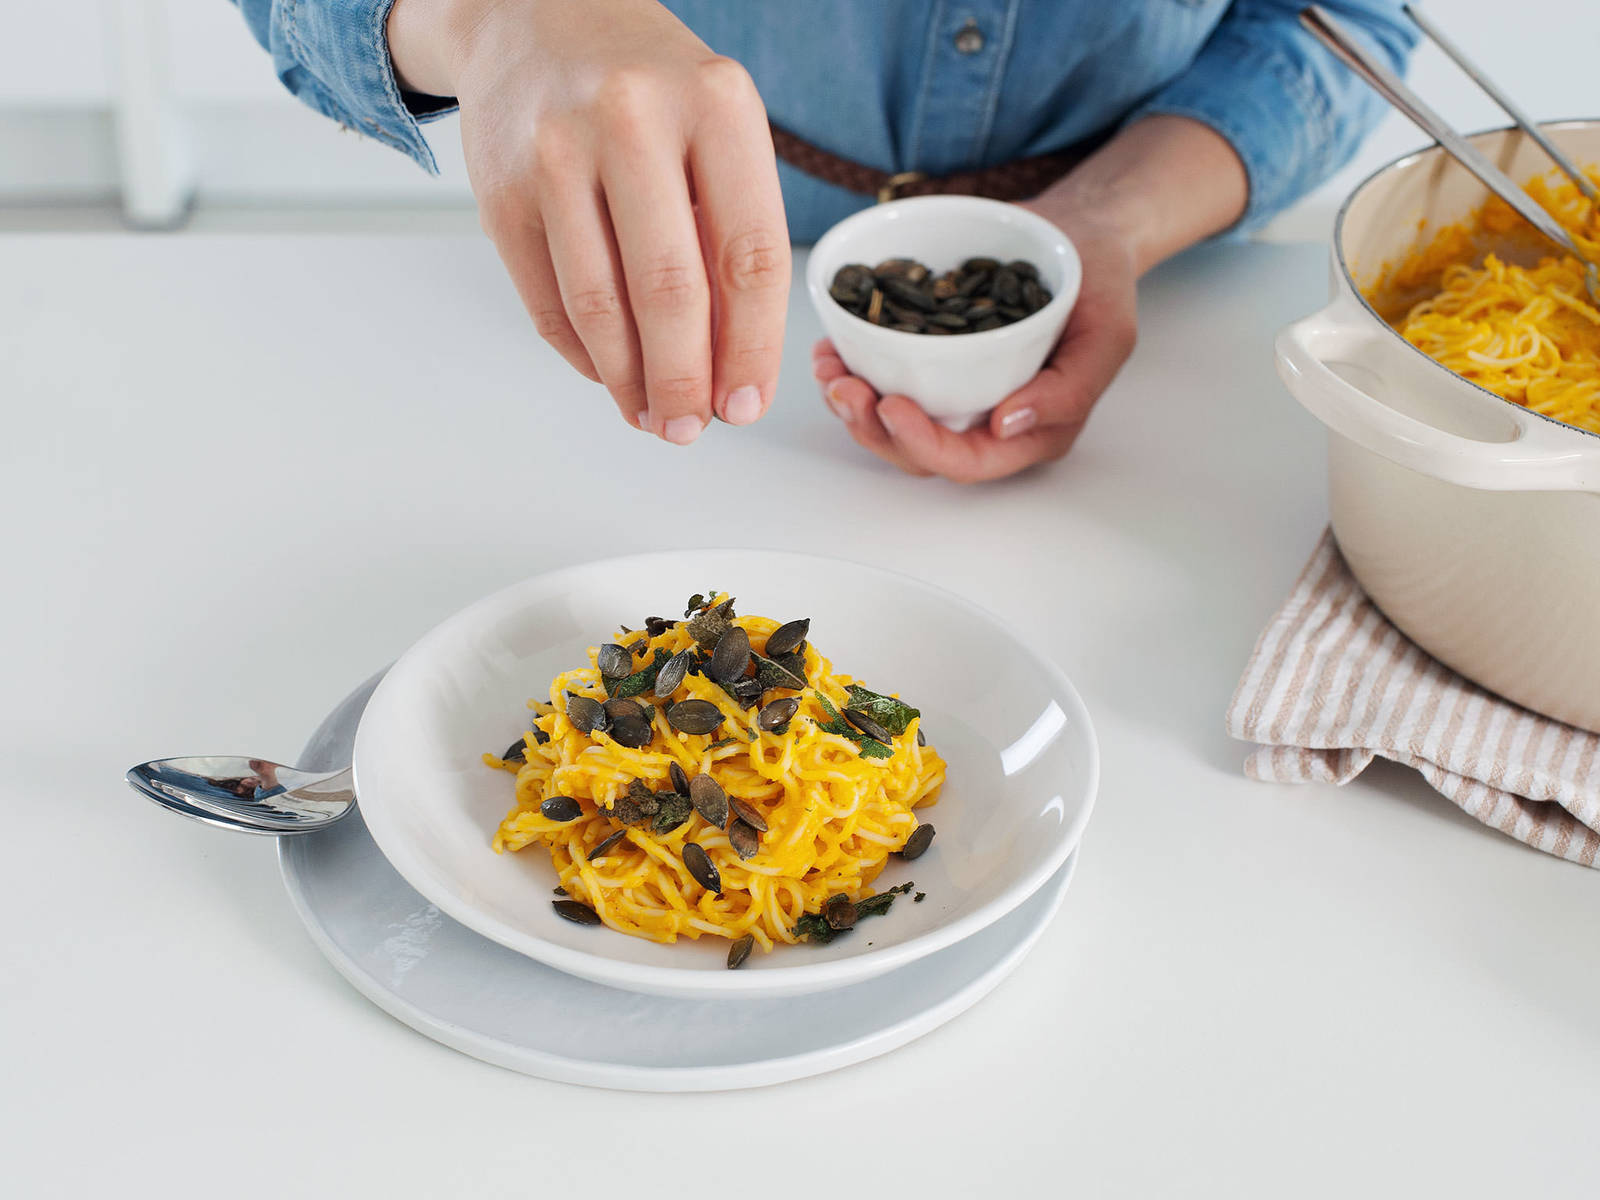 Transfer to a bowl for serving; garnish with sage leaves, pumpkin seeds, and freshly grated Parmesan cheese. Enjoy!